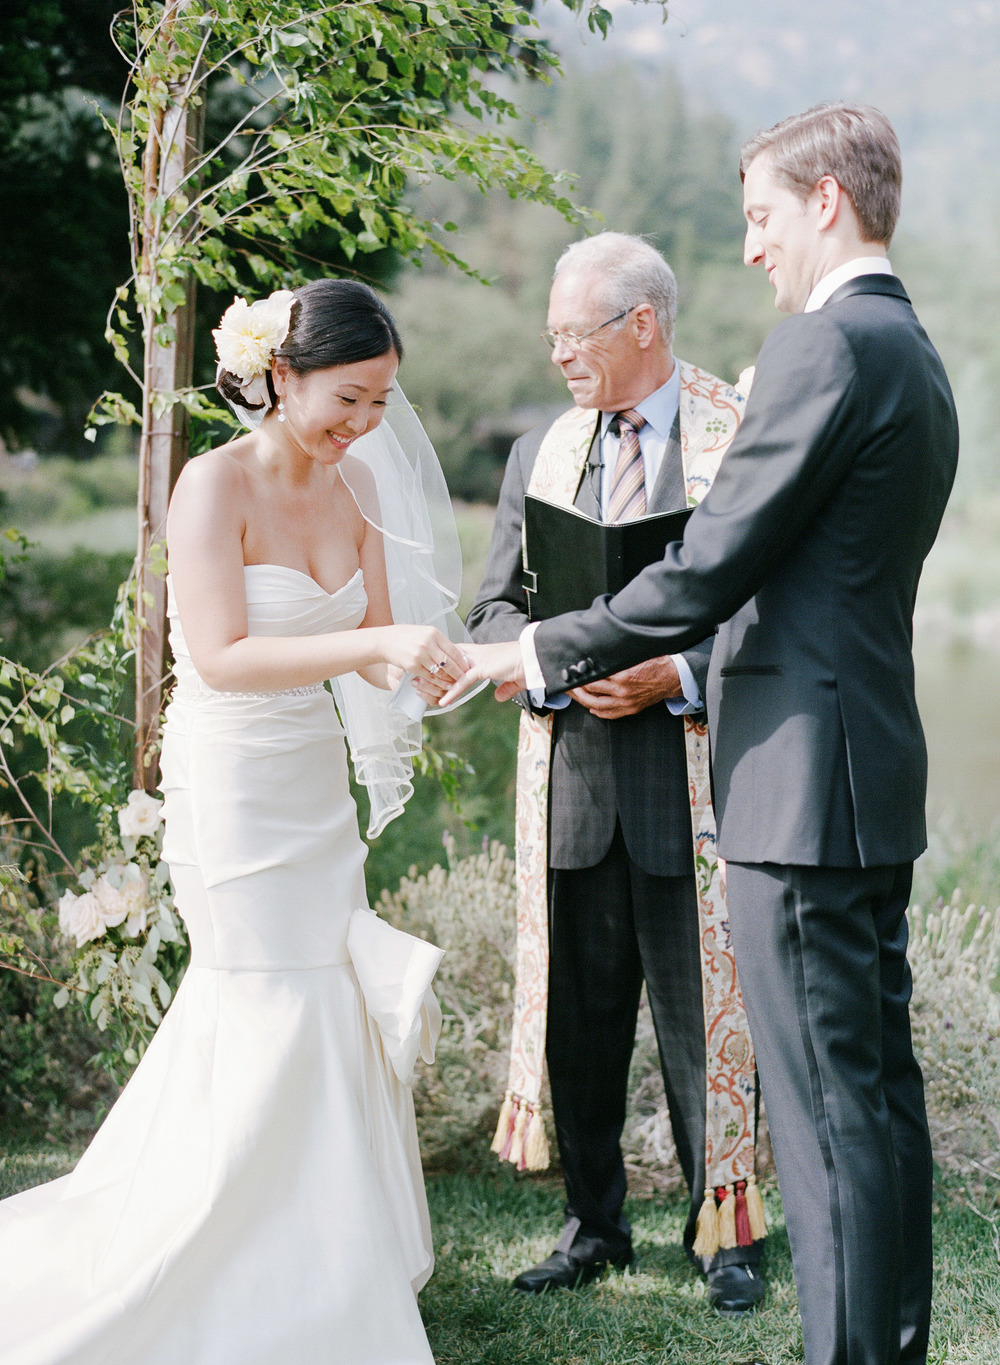 The bride and groom exchange rings during their Napa Valley wedding ceremony; photo by Sylvie Gil